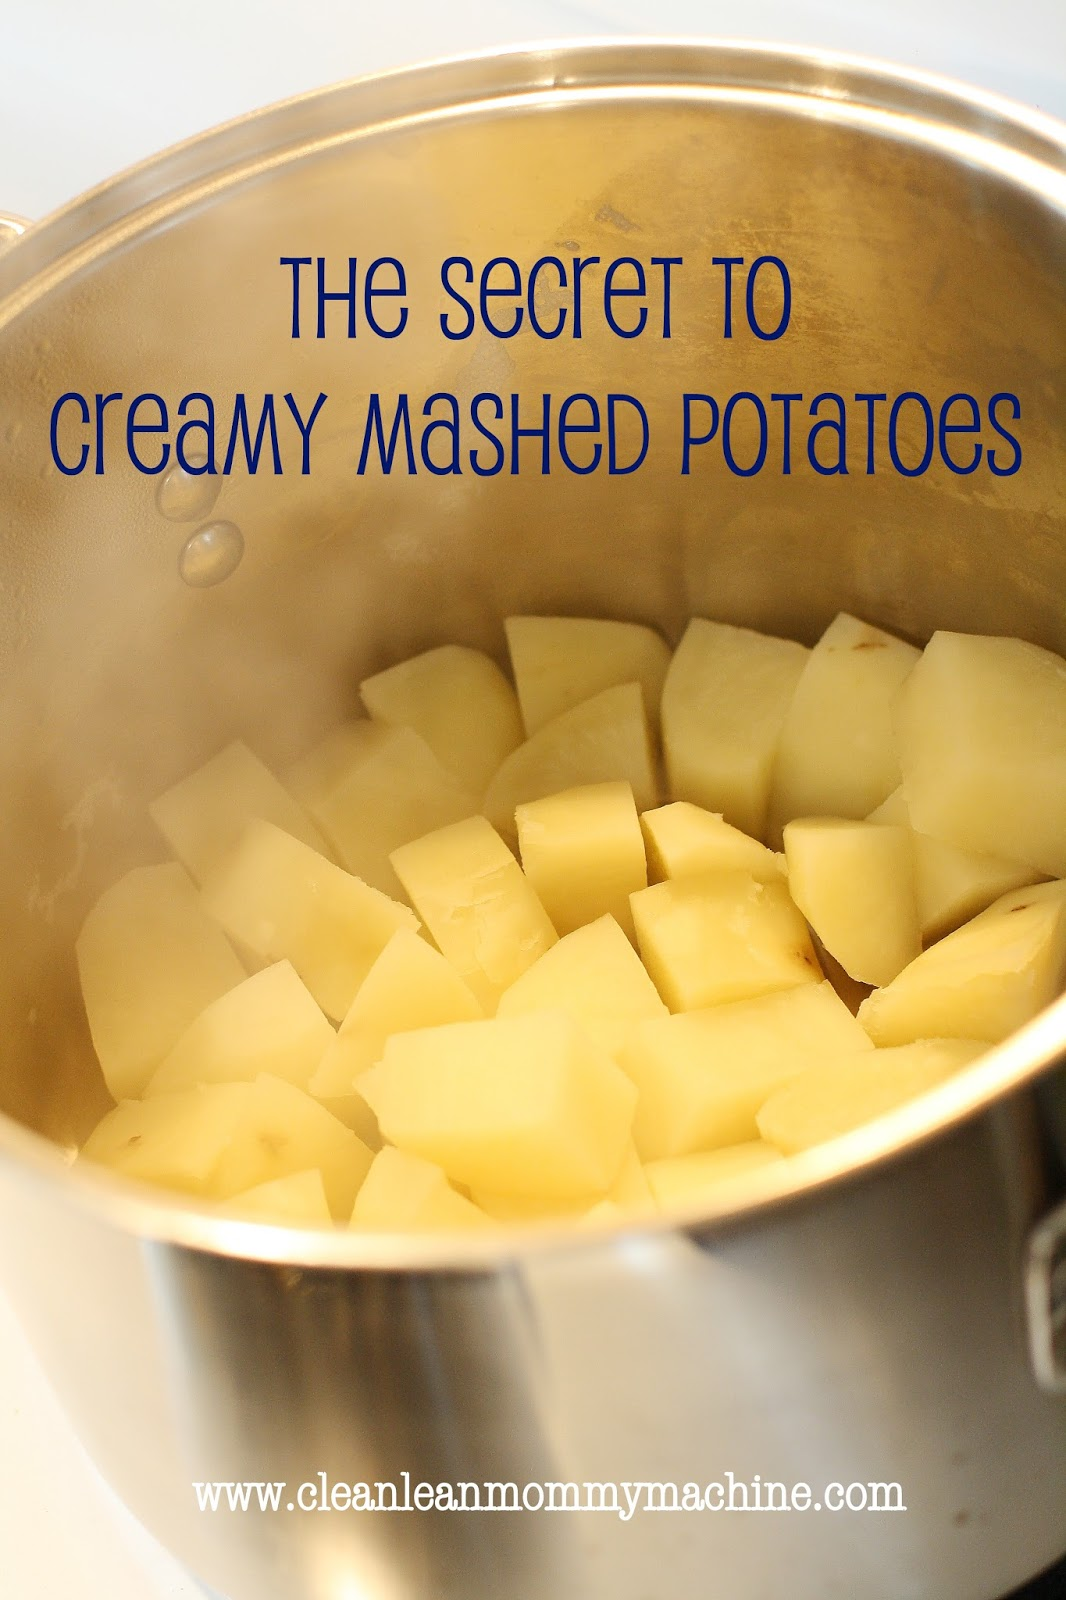 mashed potatoes pumpkin mashed potatoes herbed mashed potatoes mashed ...